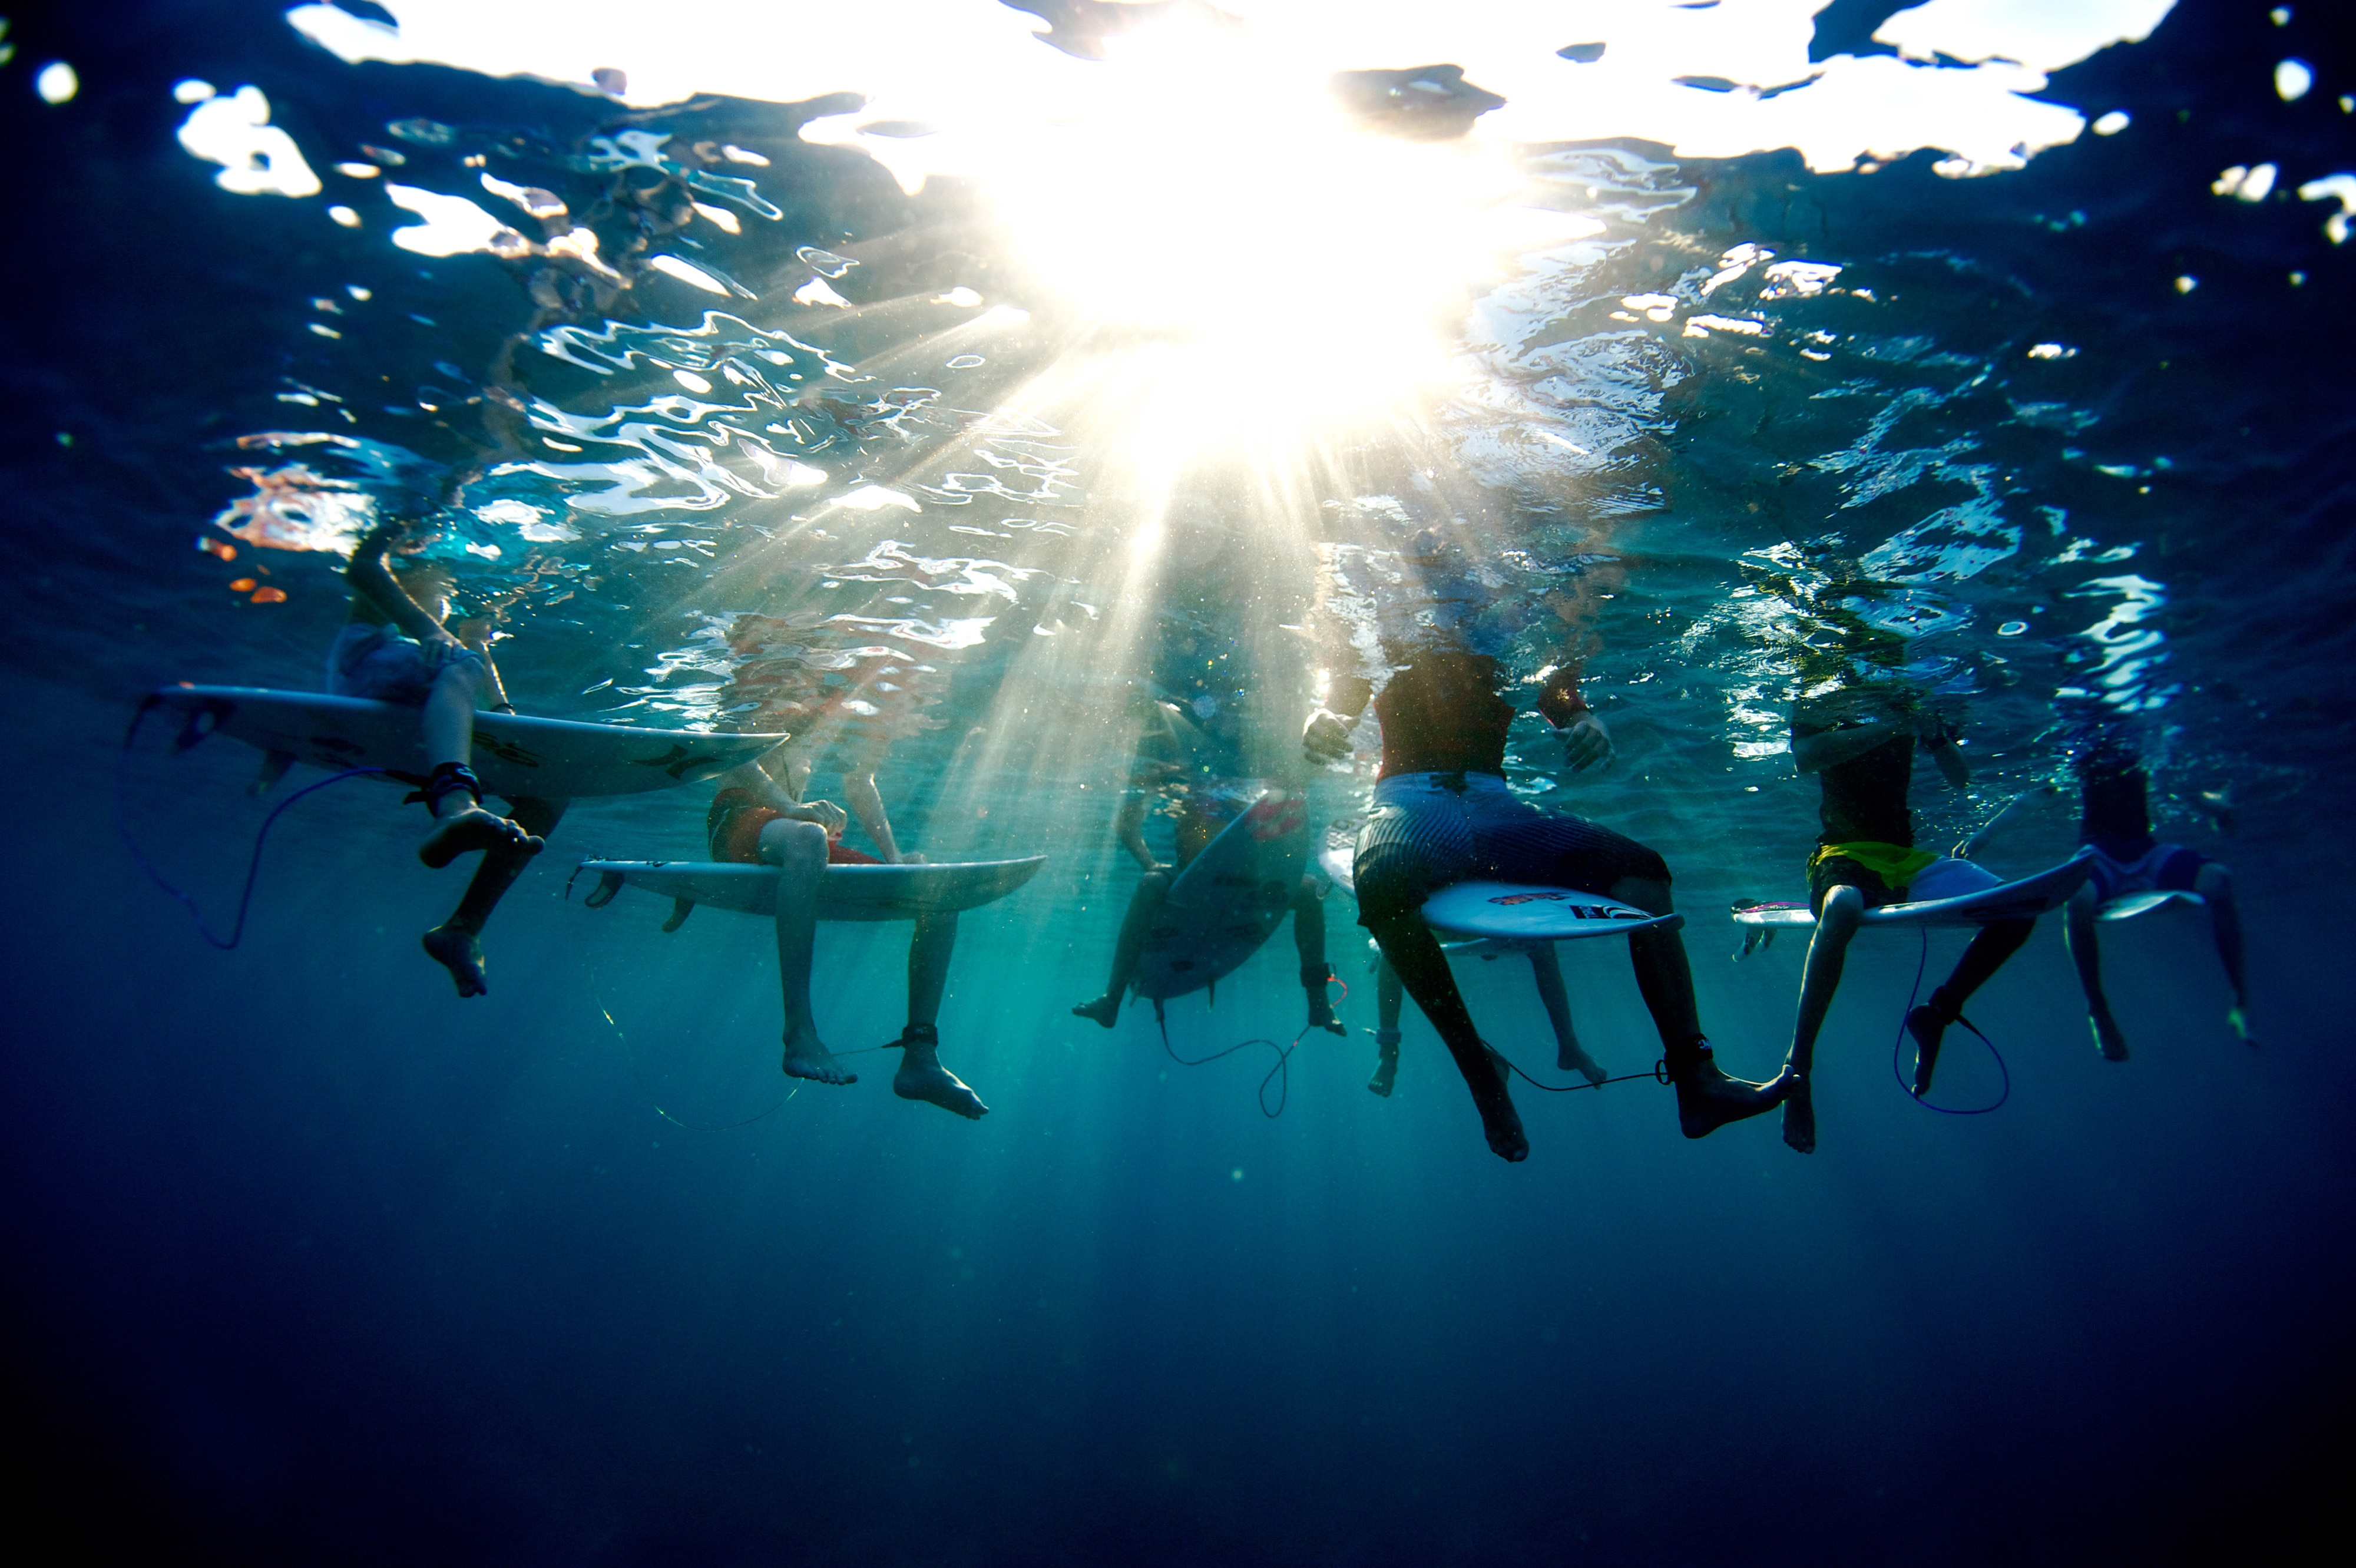 Morgan Maassen, Category finalist 2013: Lifestyle